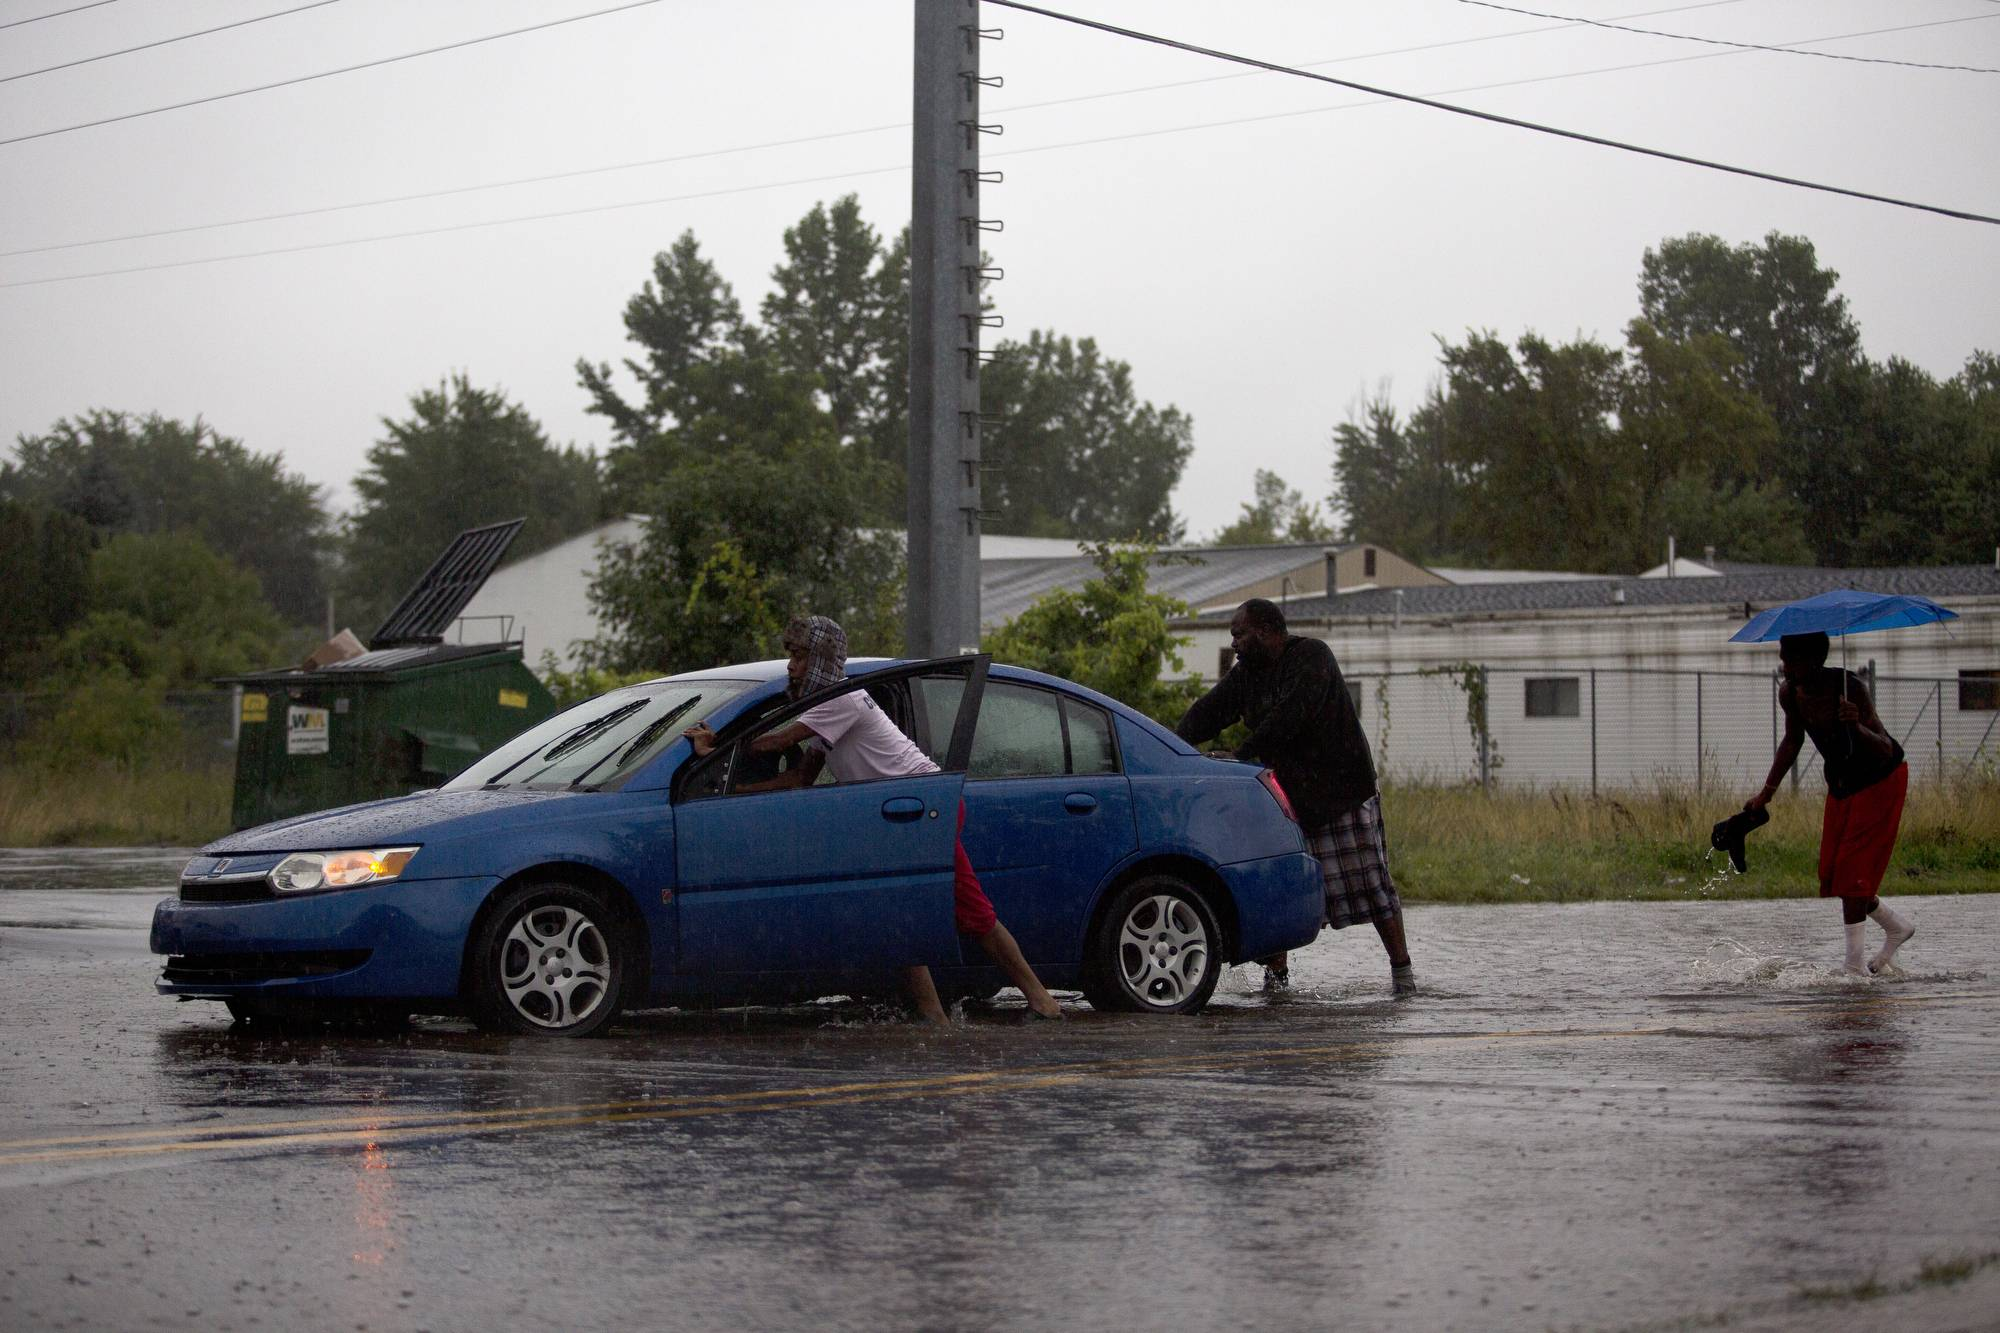 Flint resident Brittany Thomas gets help from friends after getting stuck on Lavelle Rd. just south of Pasadena Ave. in Flint, Mich. after a storm produced heavy rain and flooding.